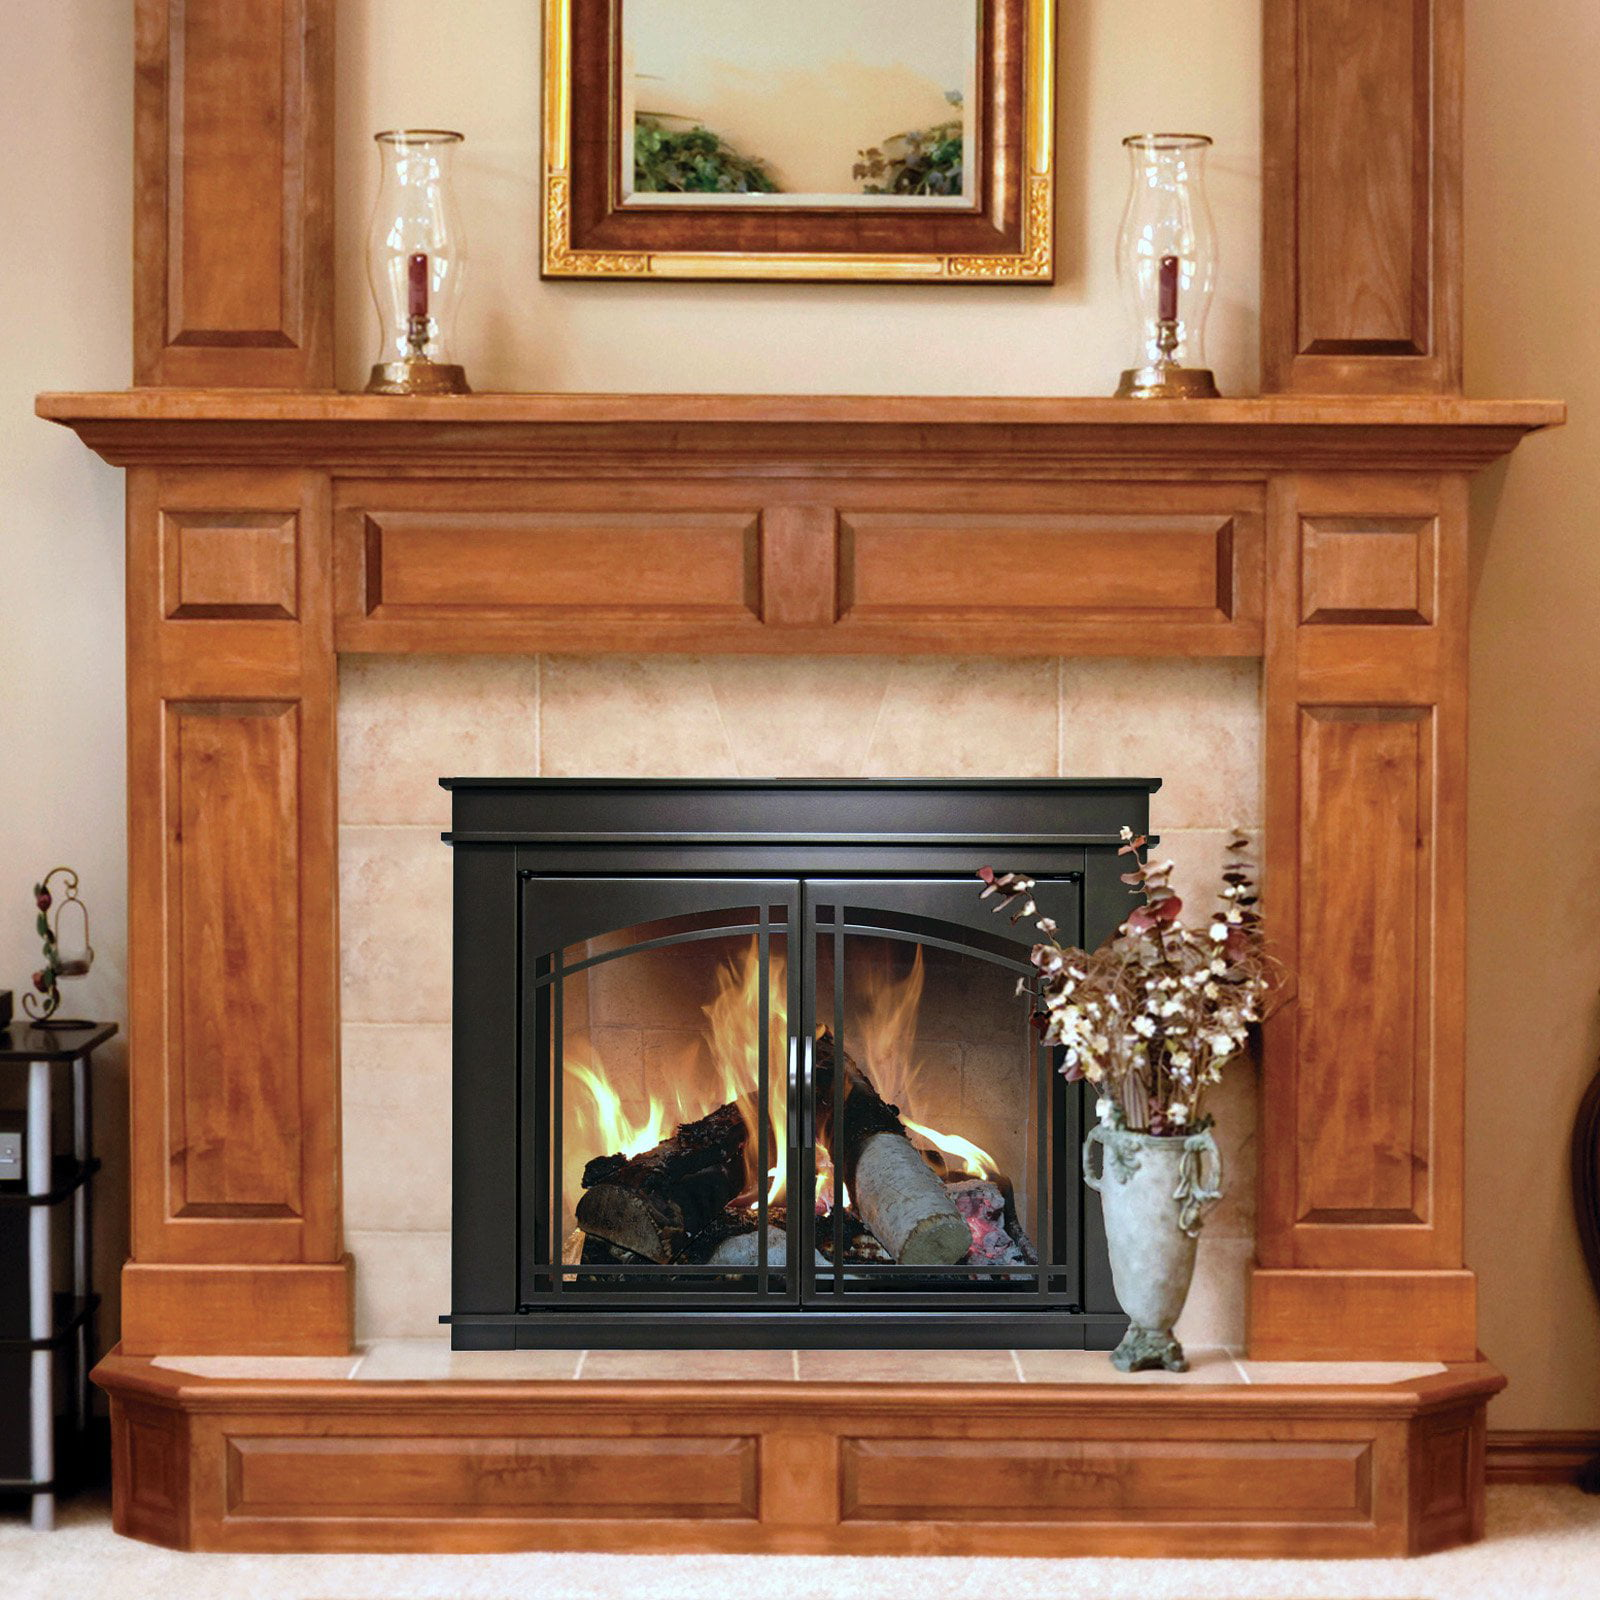 heat helps store from sealing color graphics to intense for surround on masonry the custom heavy dulley strong notice door fireplace wood doors which trgn woodburning tight column glass fire has burning